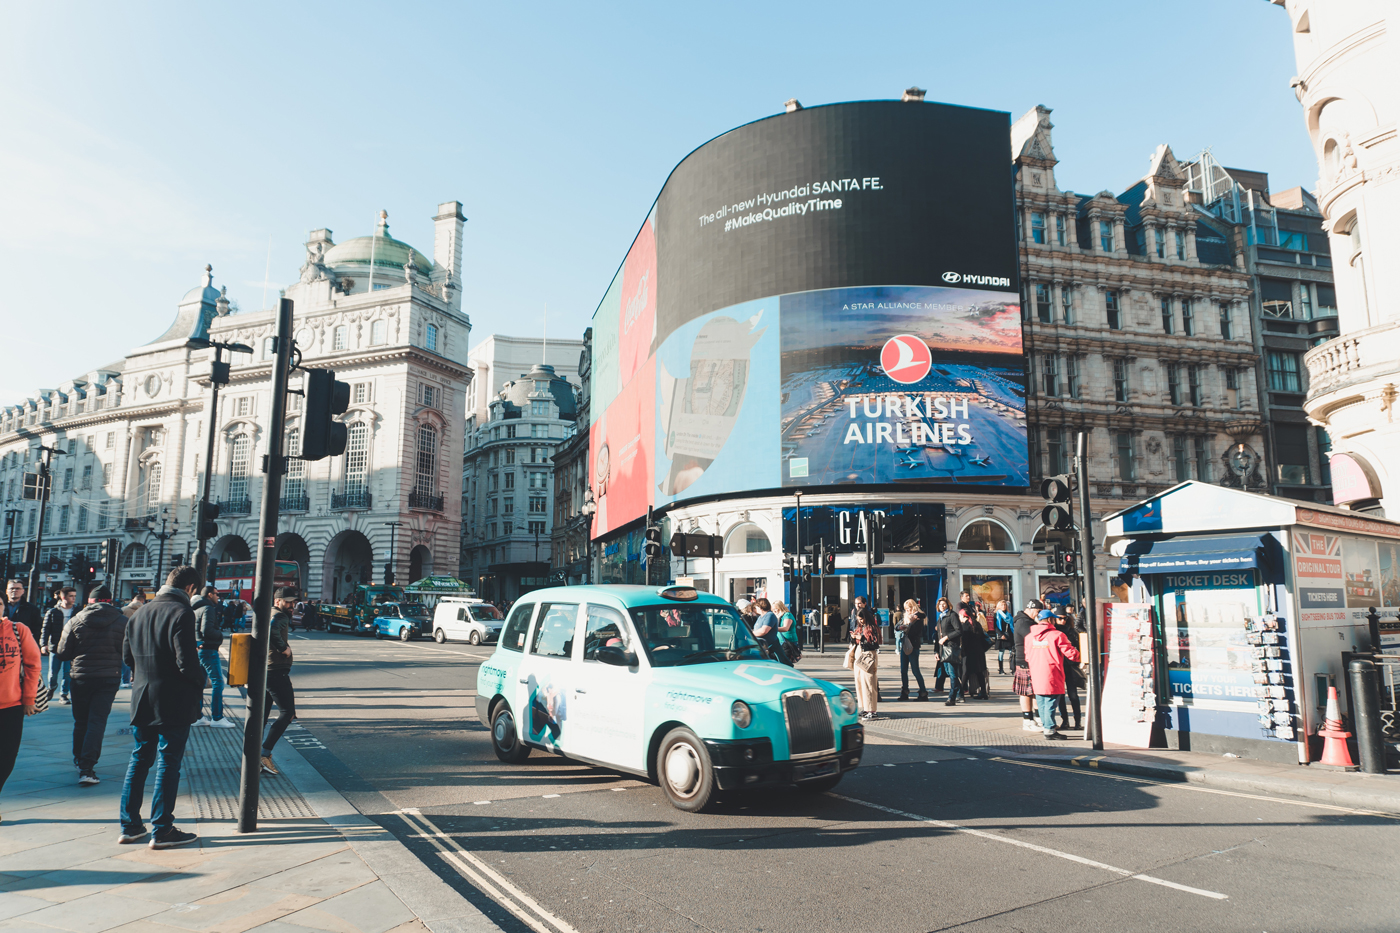 A black cab driving through Piccadilly Circus